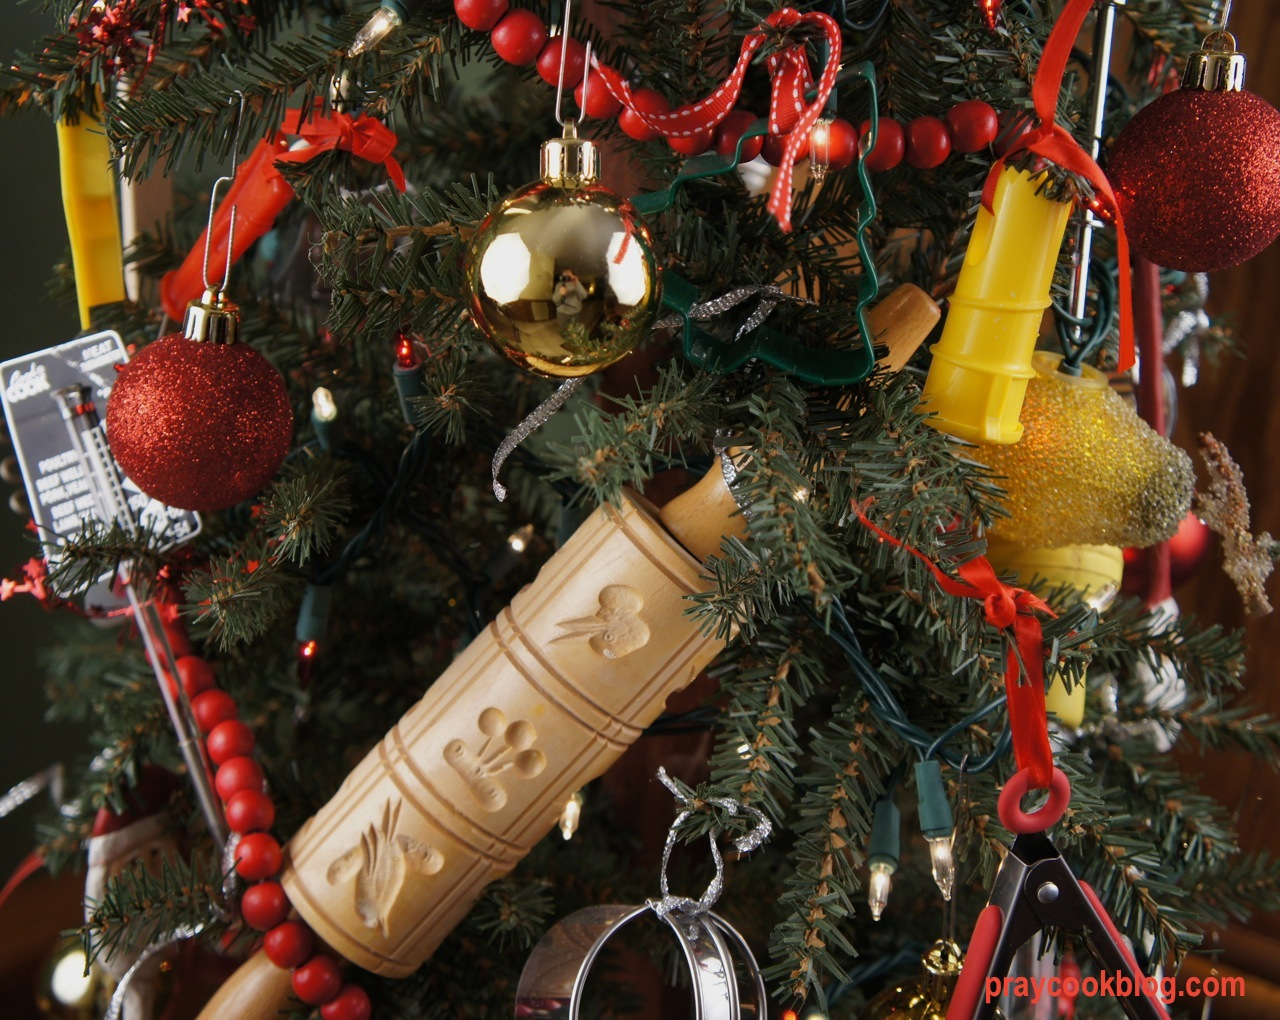 Kitchen Ornament Christmas Tree My Daily Bread Body And Soul